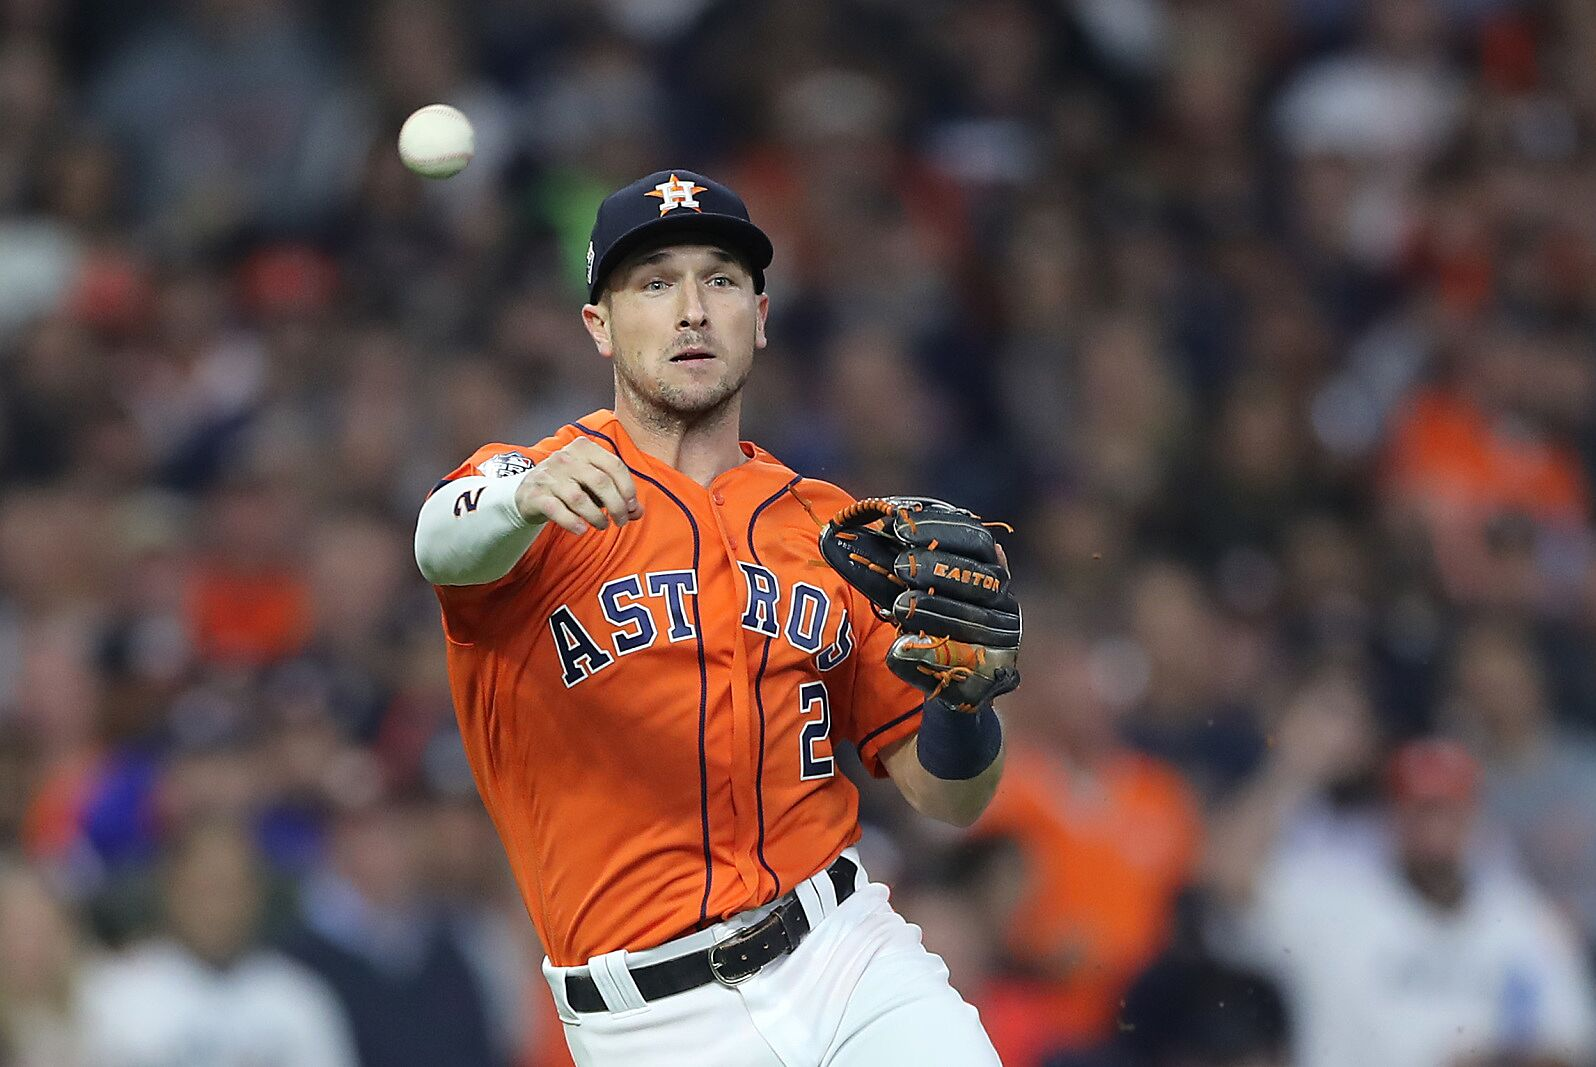 Houston Astros: The next sign-stealing casualties